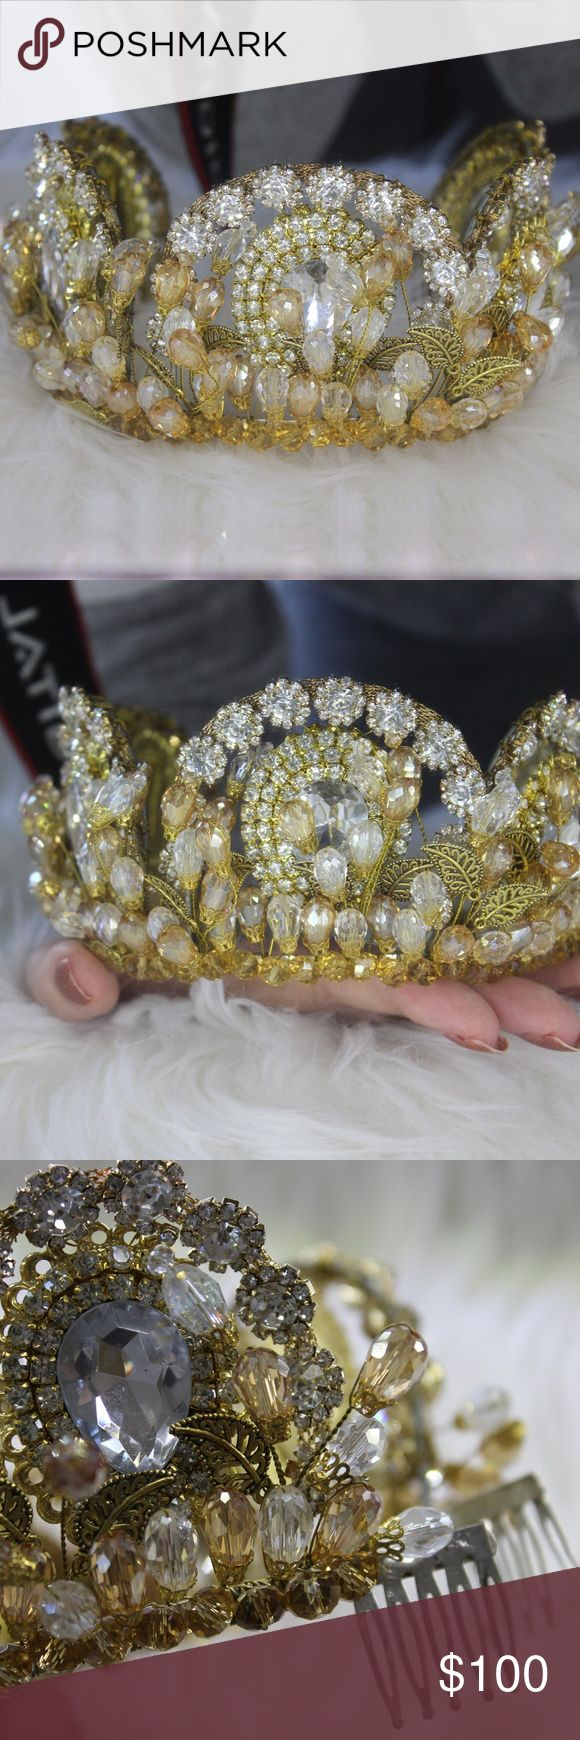 Handmade Bridal Tiara/Crown Handmade Bridal Crown/Tiara, in very good condition, sparkly and golden color. Accessories Hair Accessories